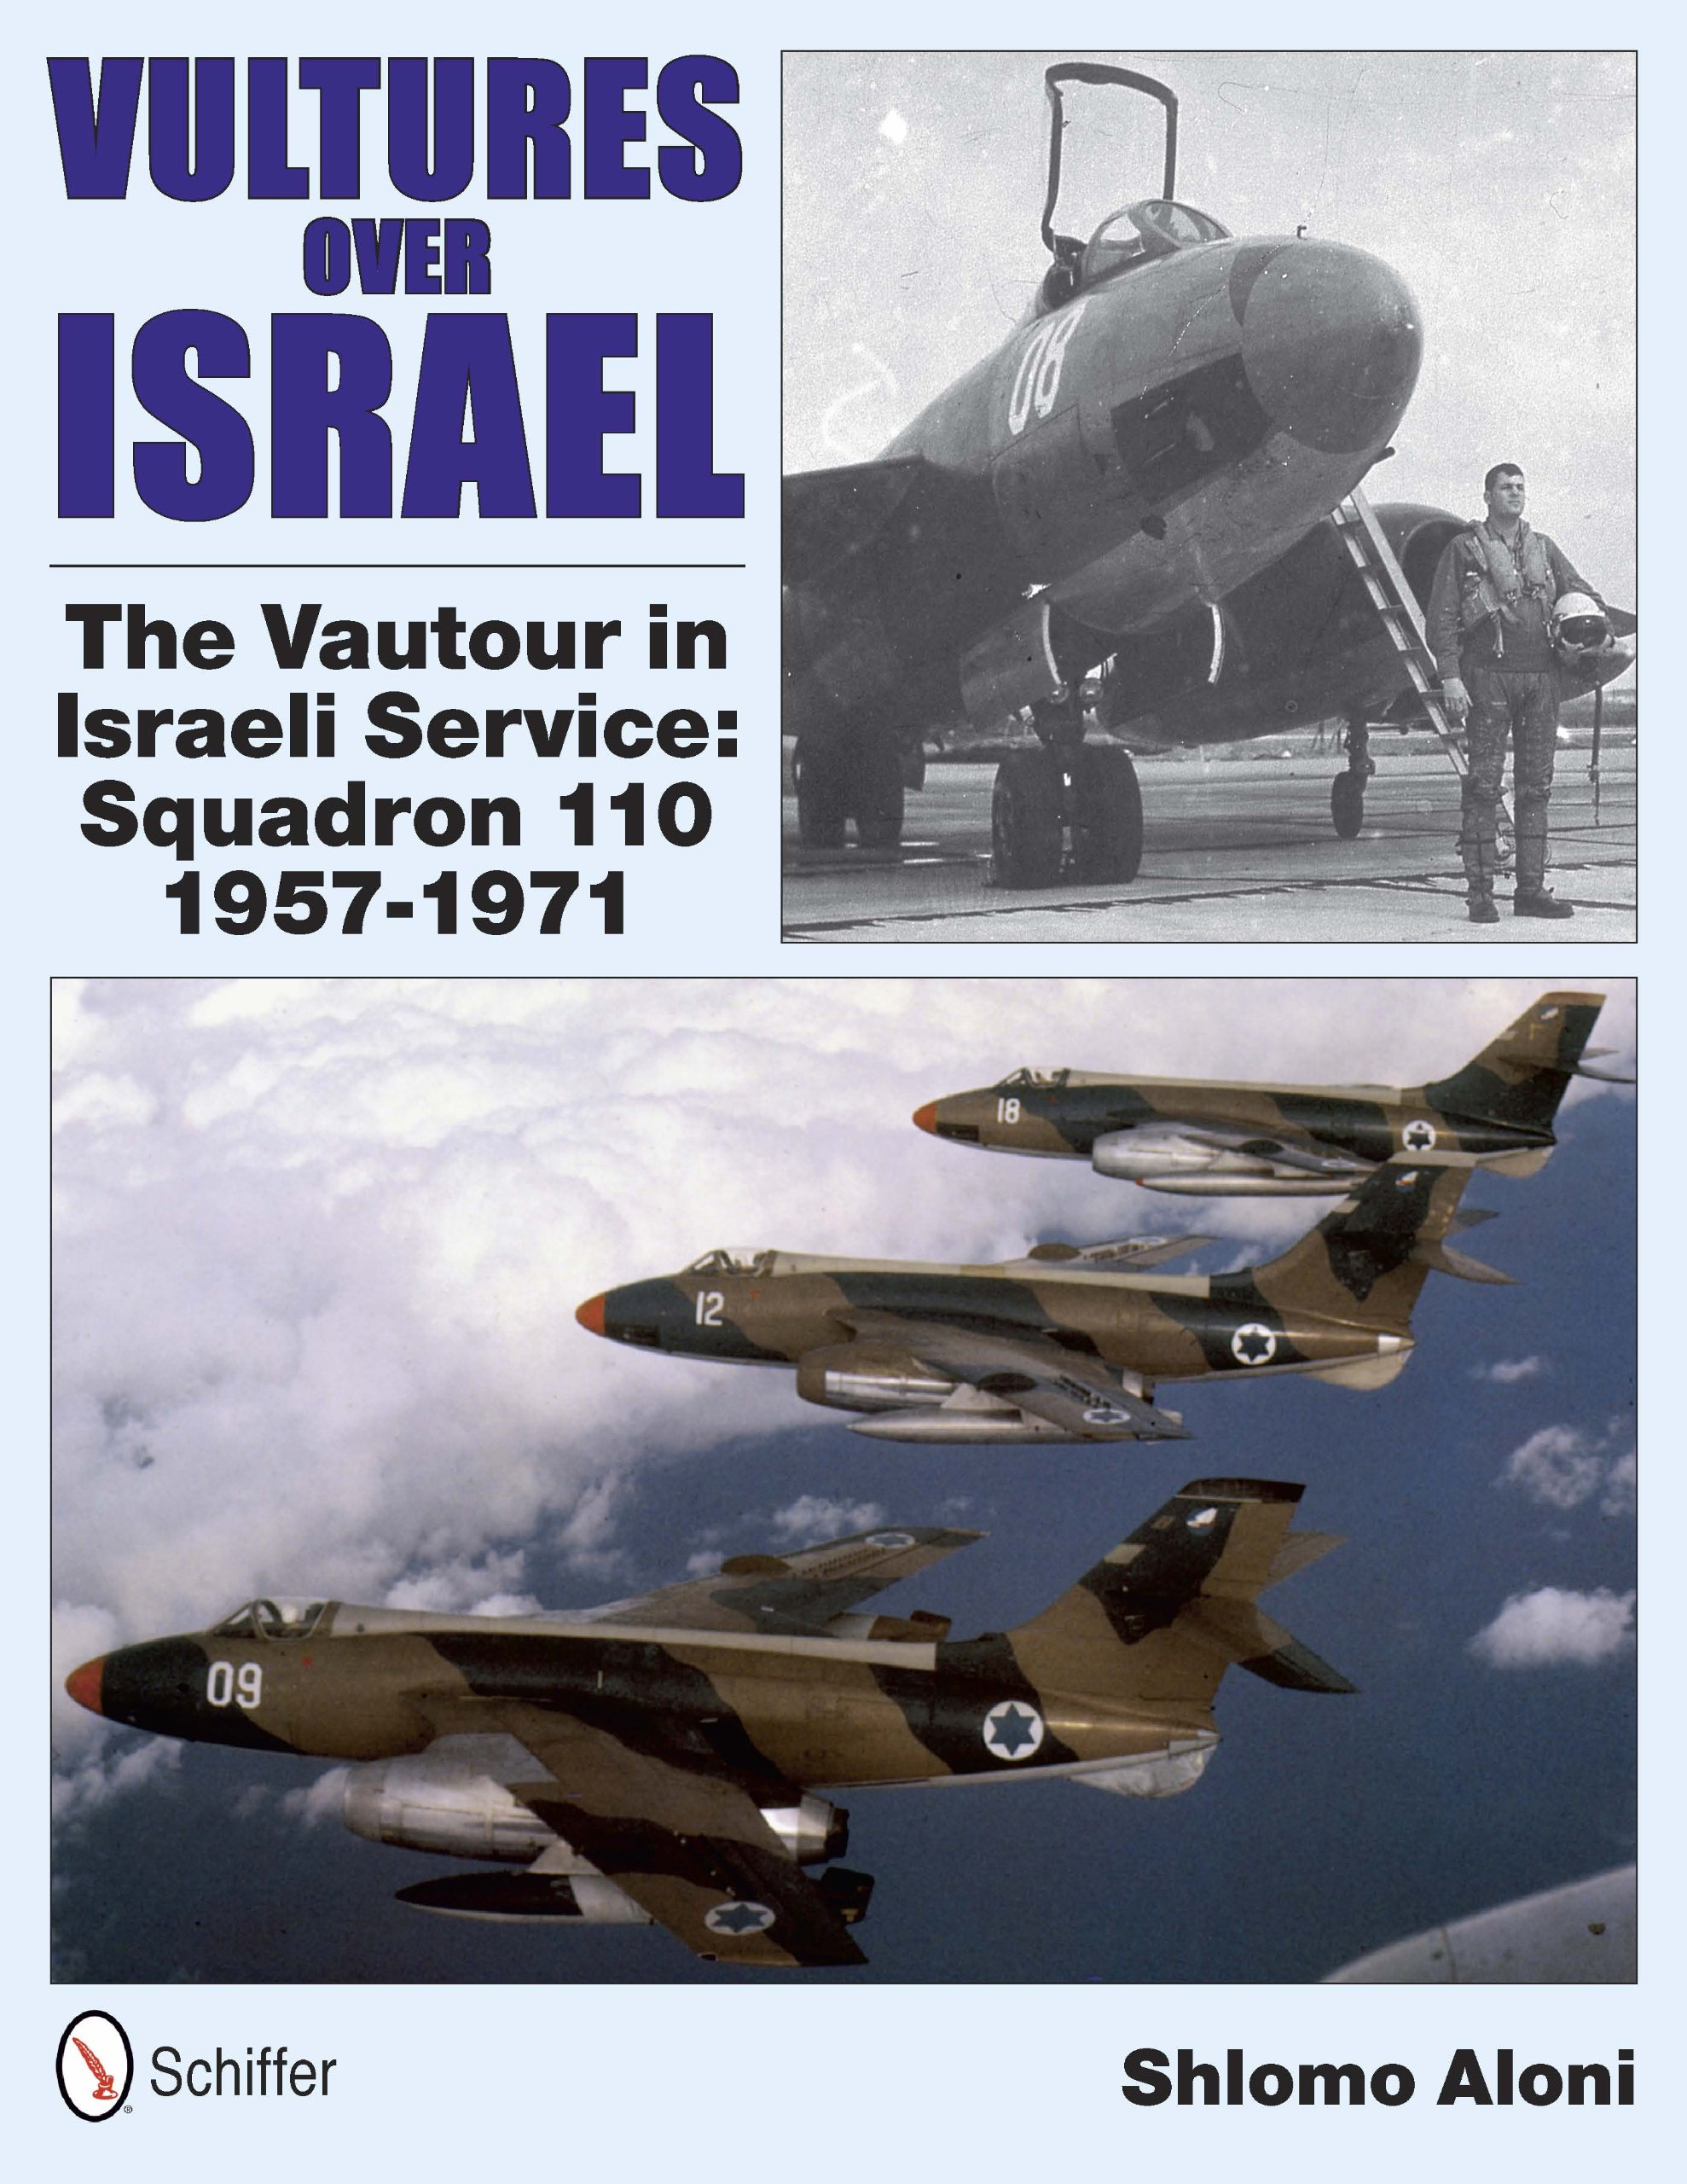 Vultures over Israel: The Vautour in Israeli Service Squadron 110, 1957-1971